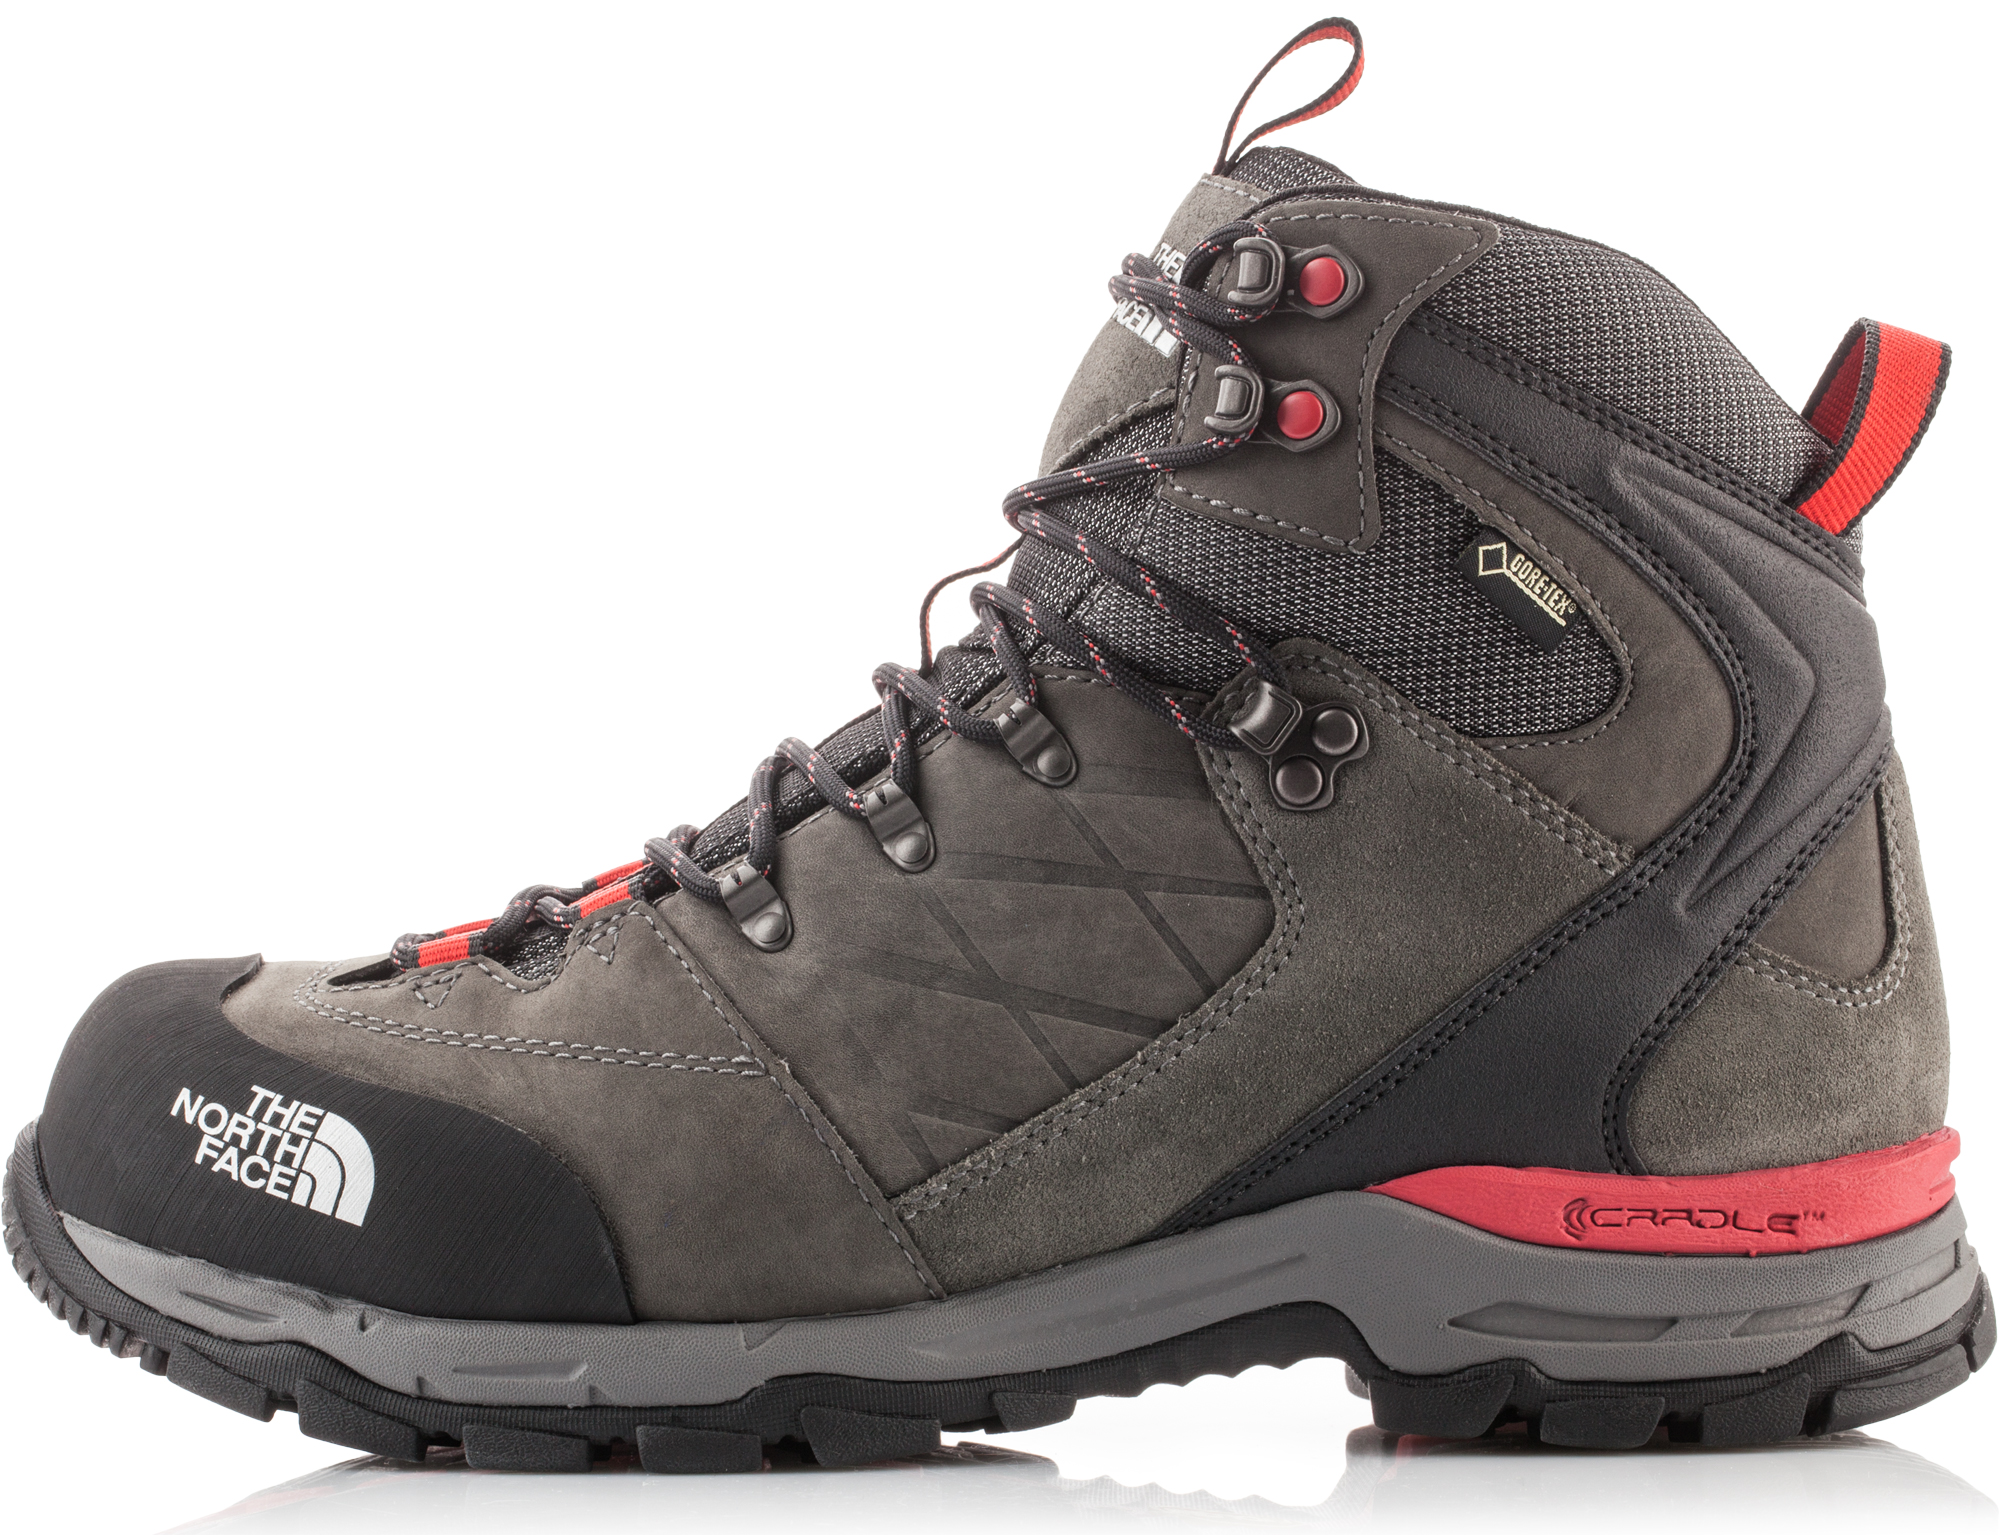 The North Face Ботинки мужские The North Face Verbera Hiker Ii ботинки трекинговые the north face the north face th016amvyk37